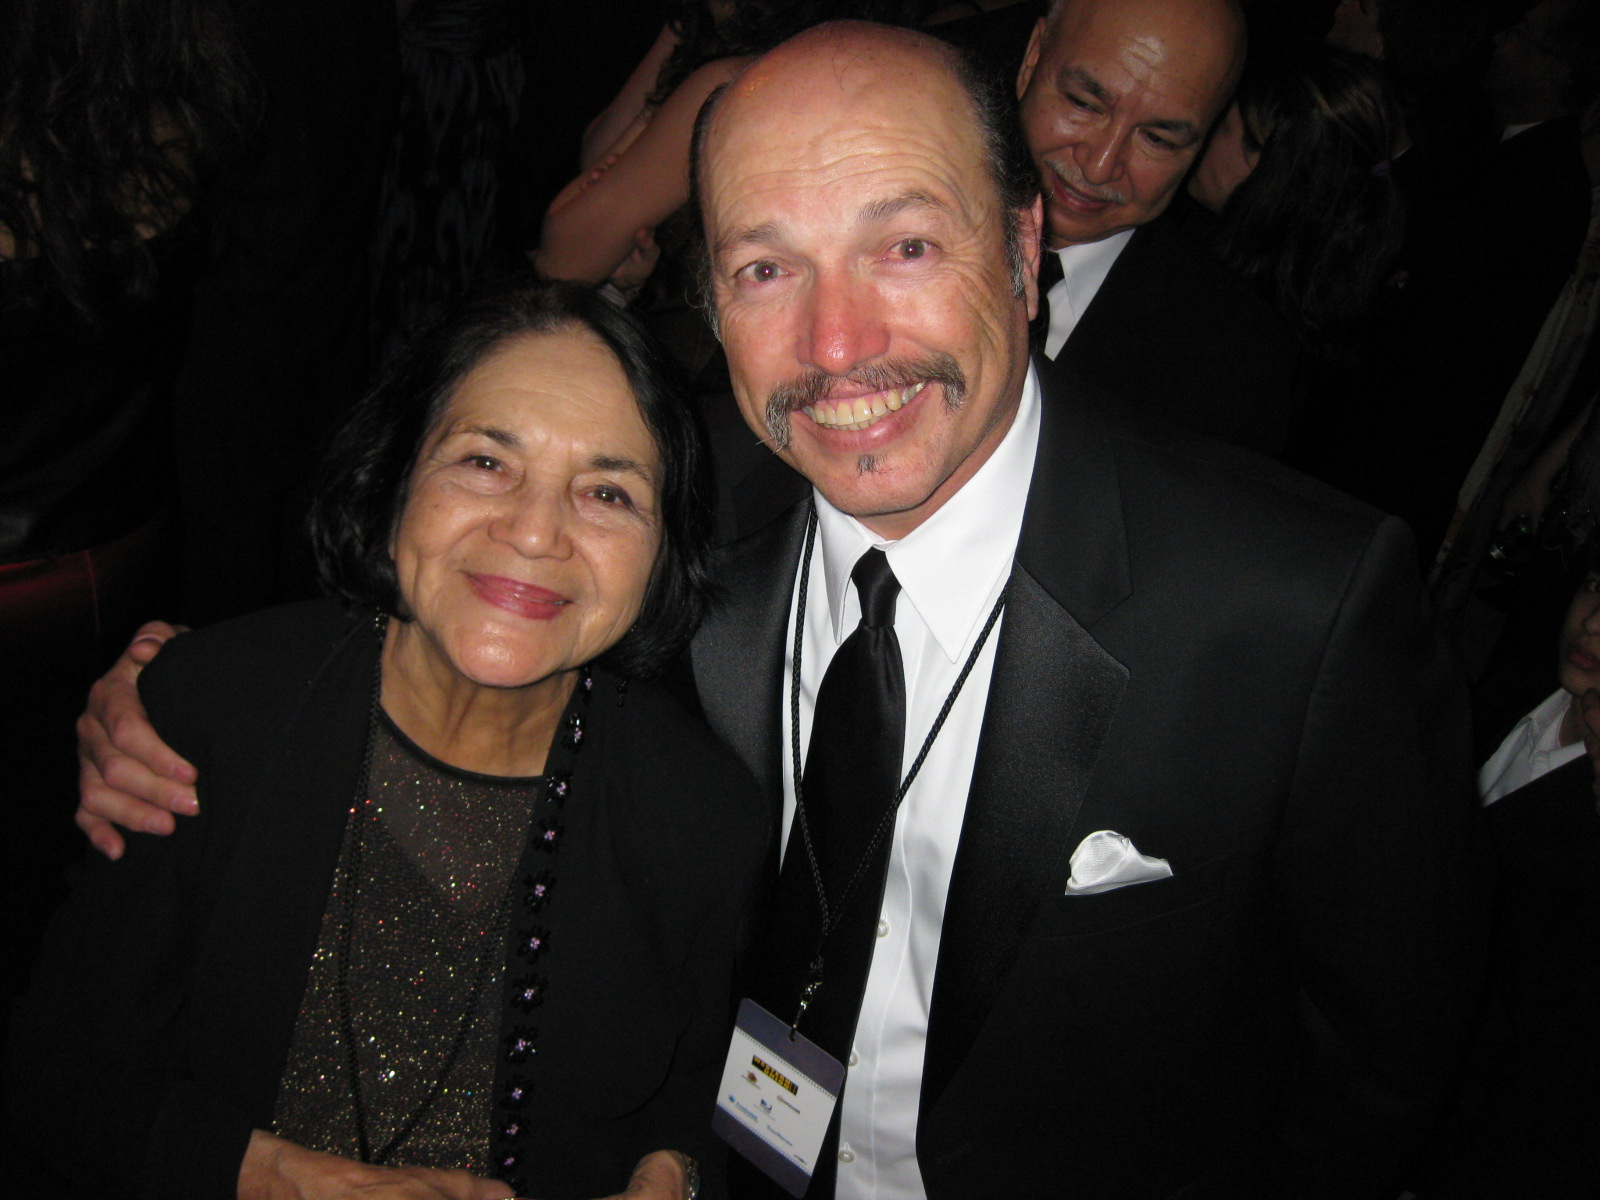 Tony with the Co-Founder of the United Farm Workers Dolores Huerta at President Obama's first Inaugural Latino Gala.